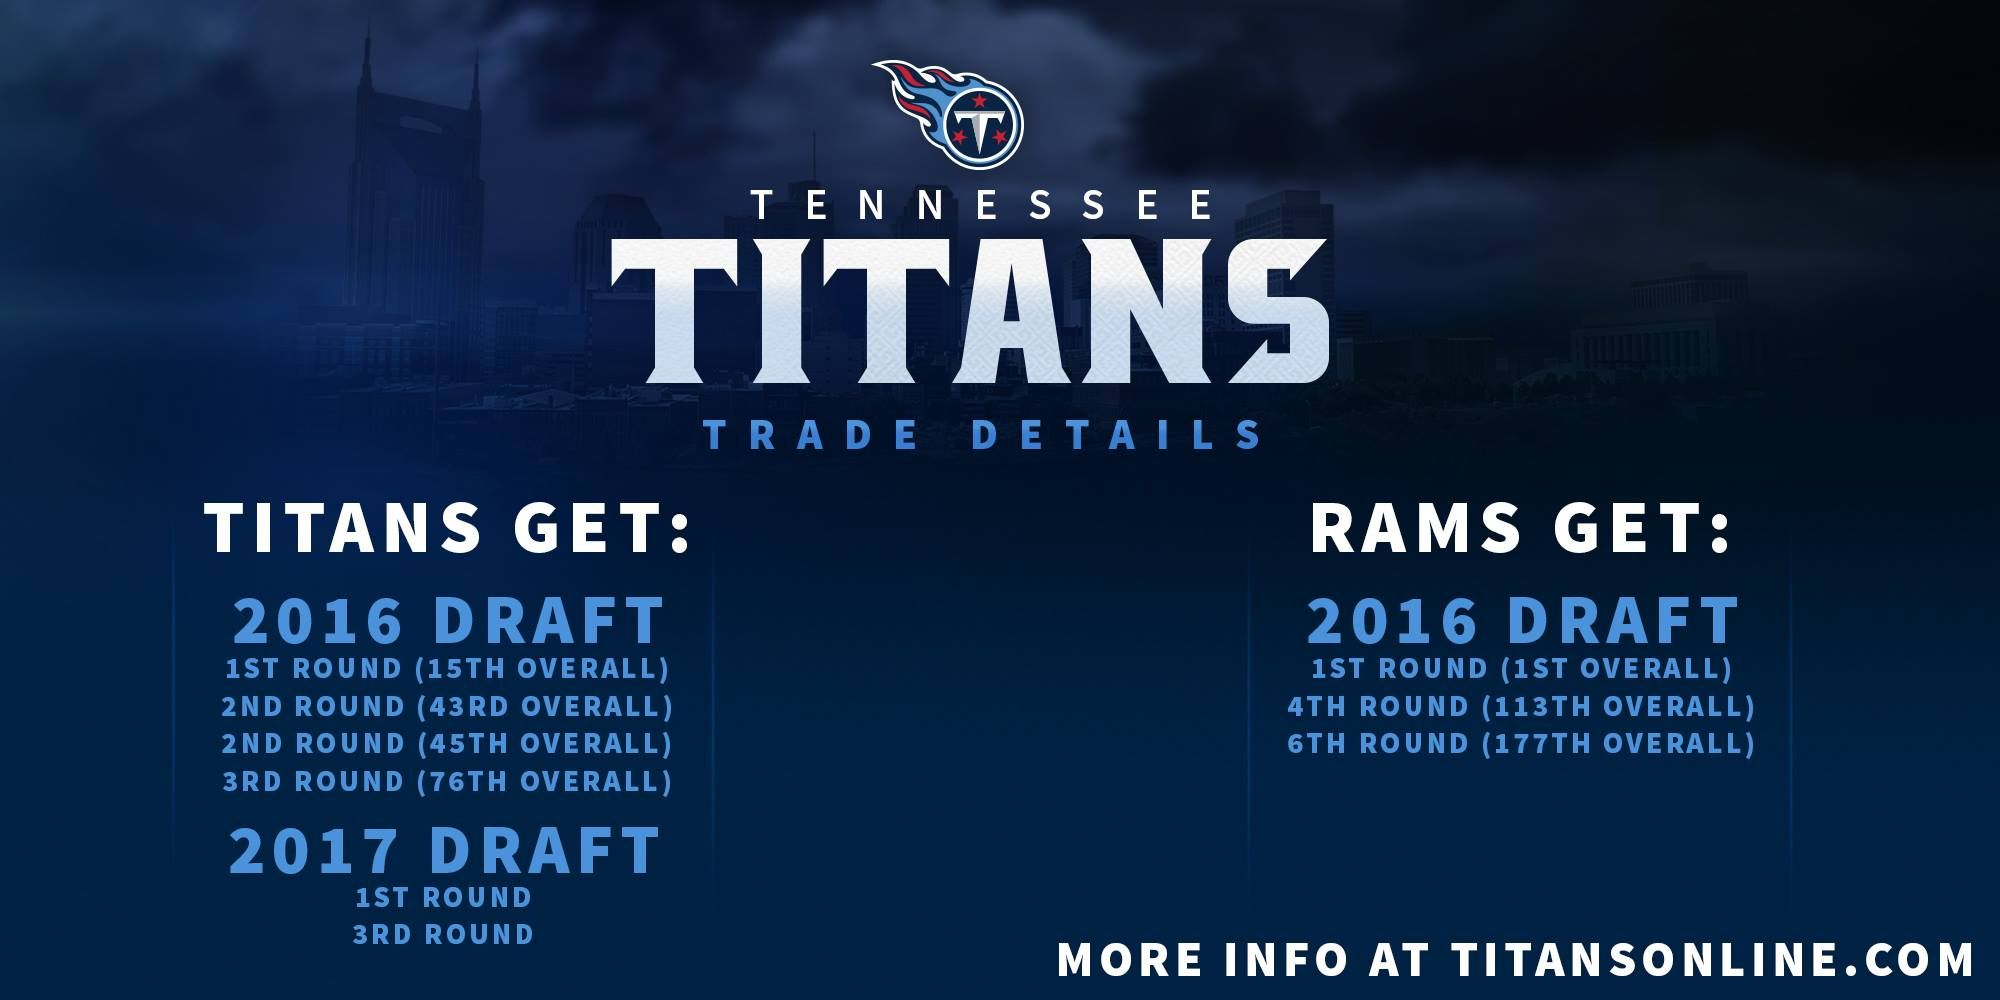 Full Details On Titans Trade With The Rams 4 14 2016 Tennessee Titans Titans Trading